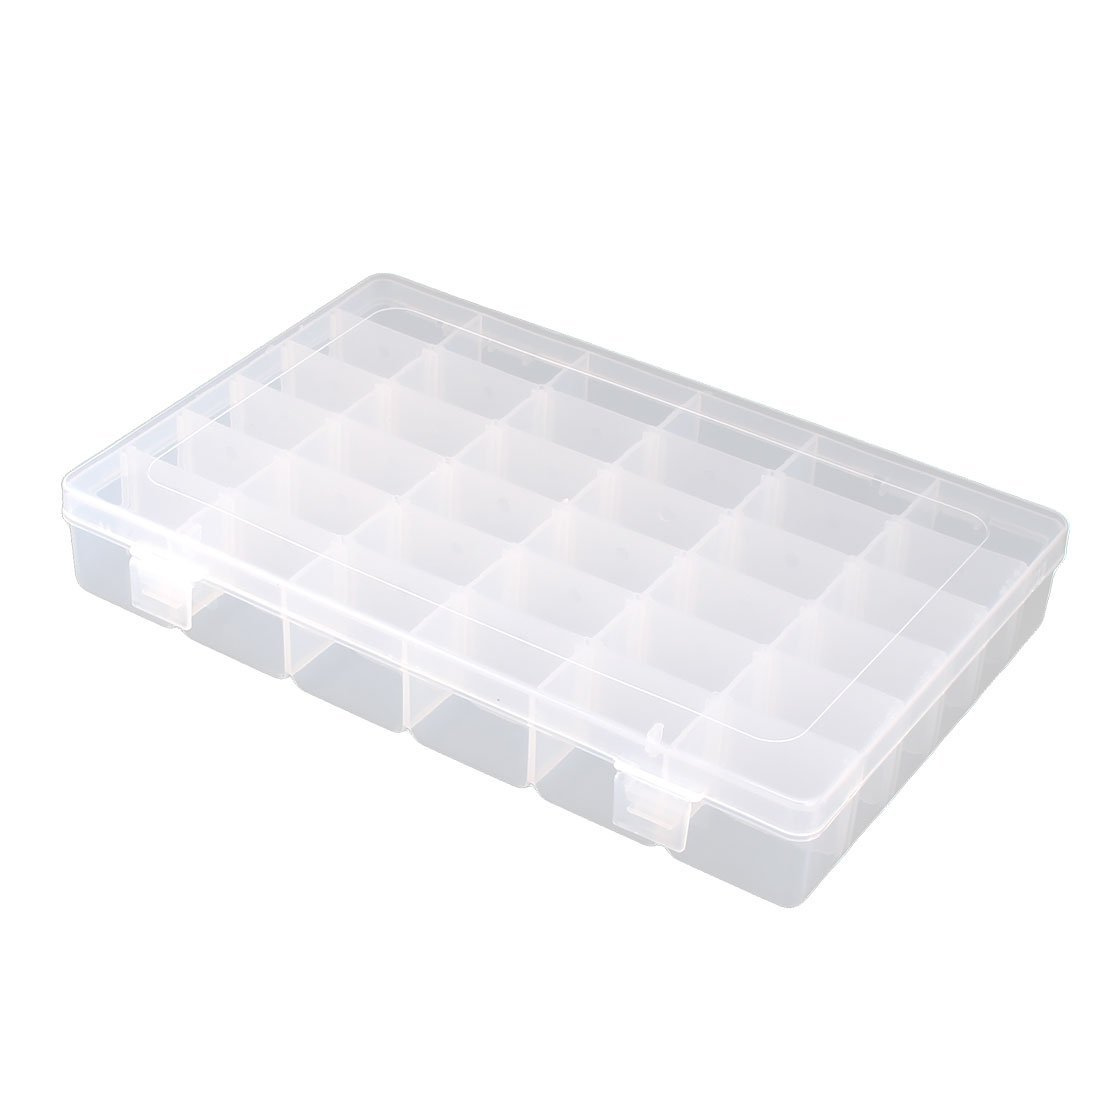 uxcell Plastic Household 36 Compartments Jewelry Earring Bead Container Storage Case Clear